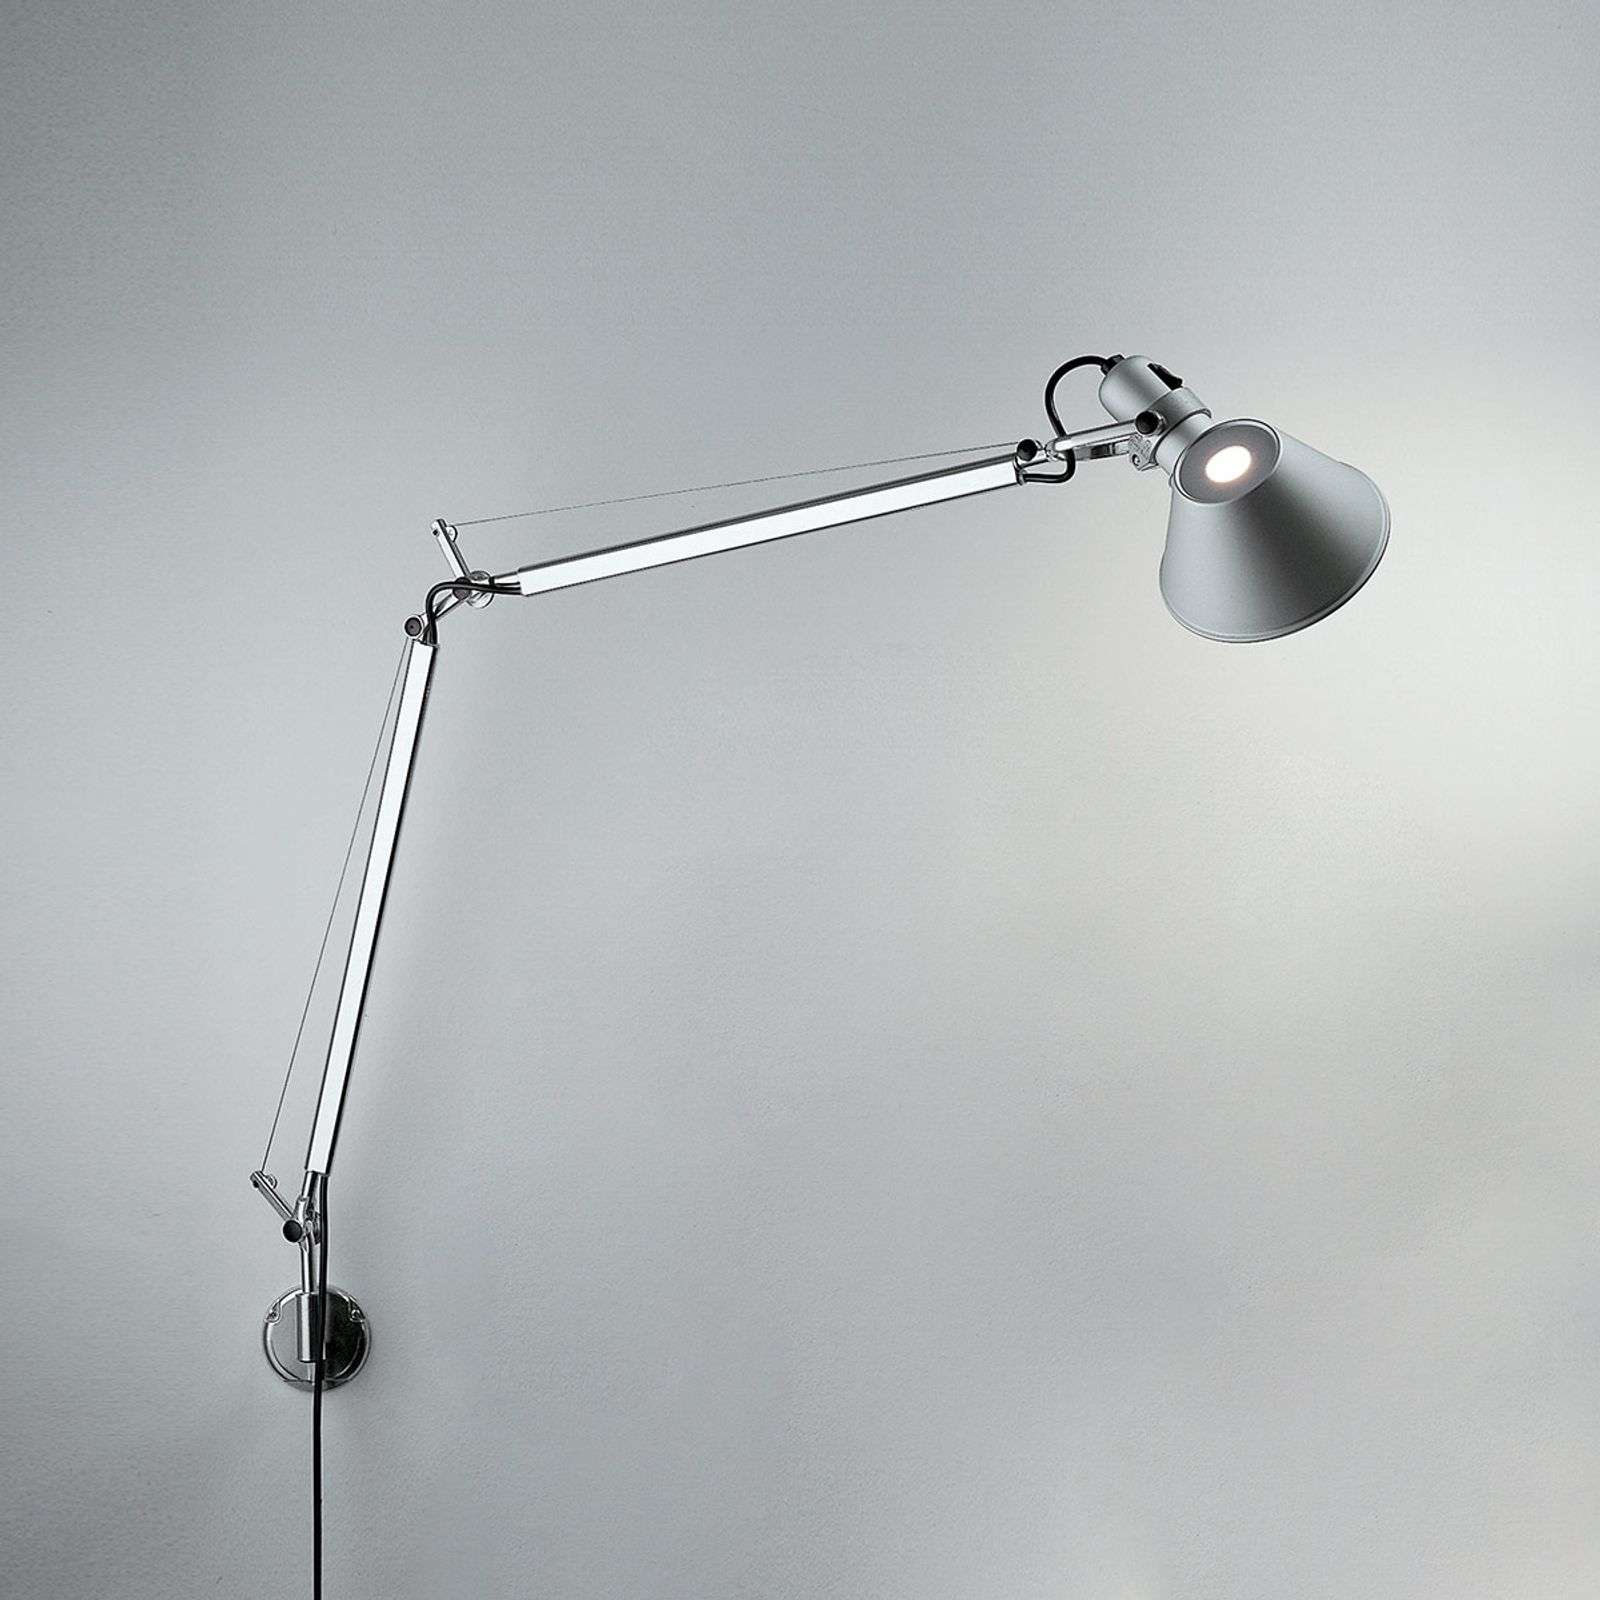 Artemide Tolomeo applique LED 2 700 K